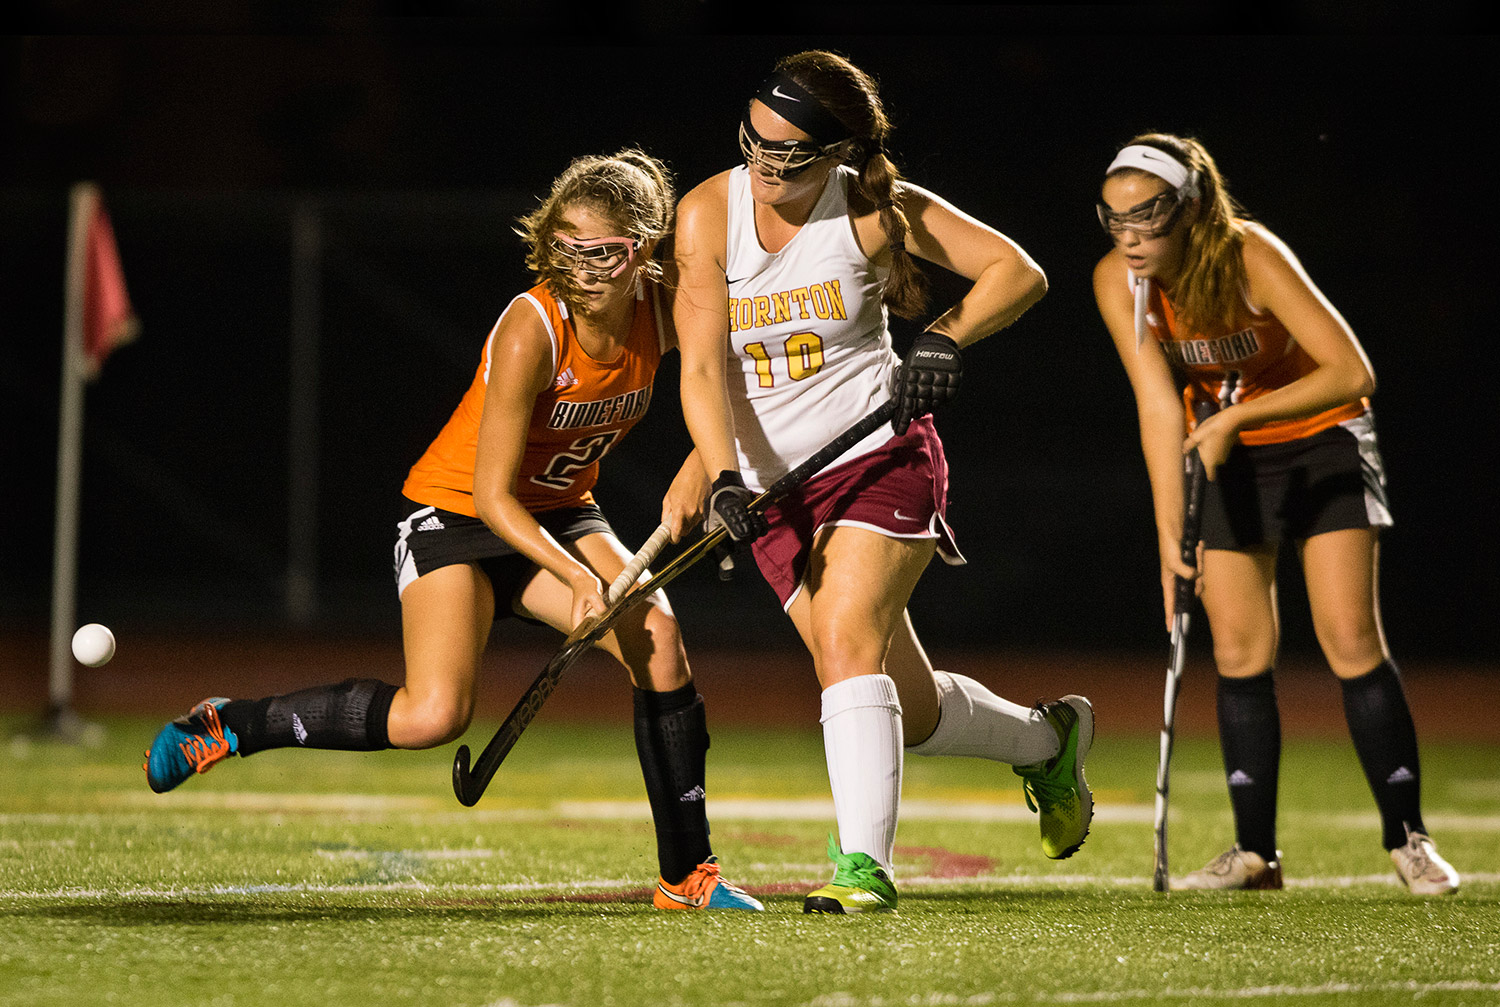 Biddeford's Paige Laverriere watches Thornton Academy forward Emma Dutremble's pass go by. Carl D. Walsh/Staff Photographer